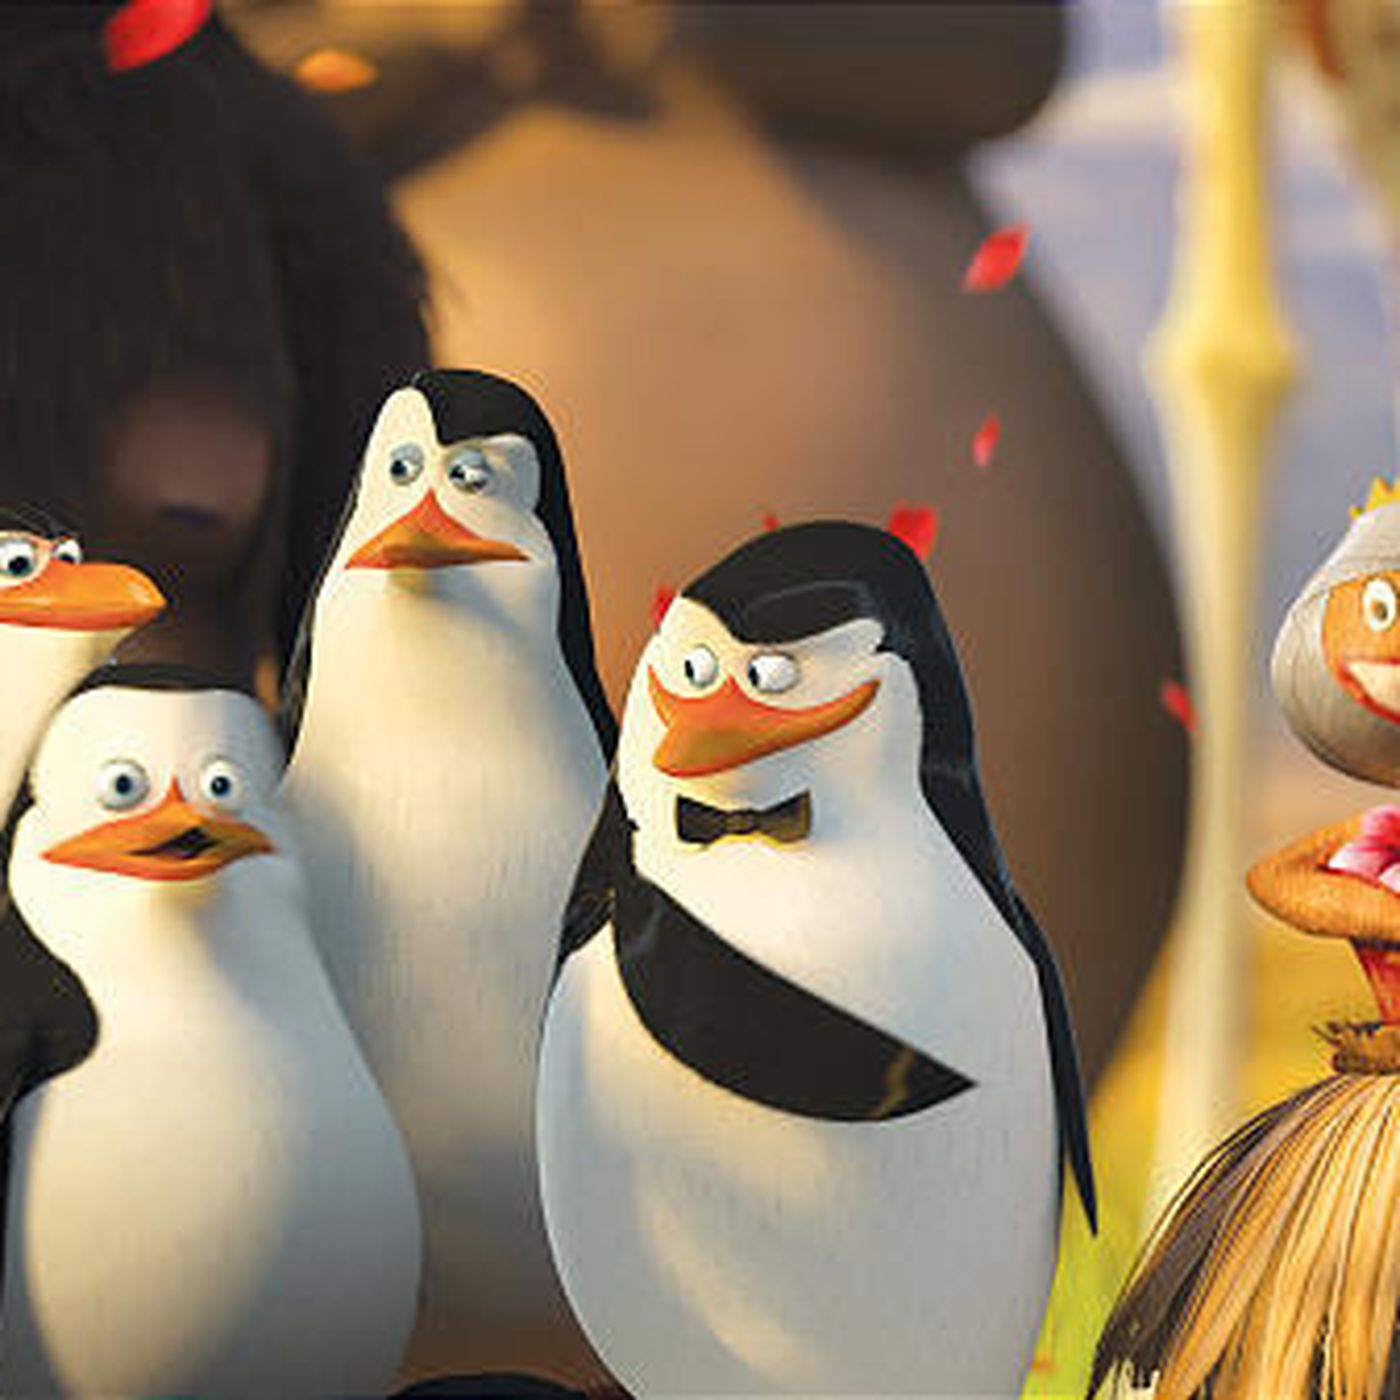 Madagascar' co-director steals show as penguin leader